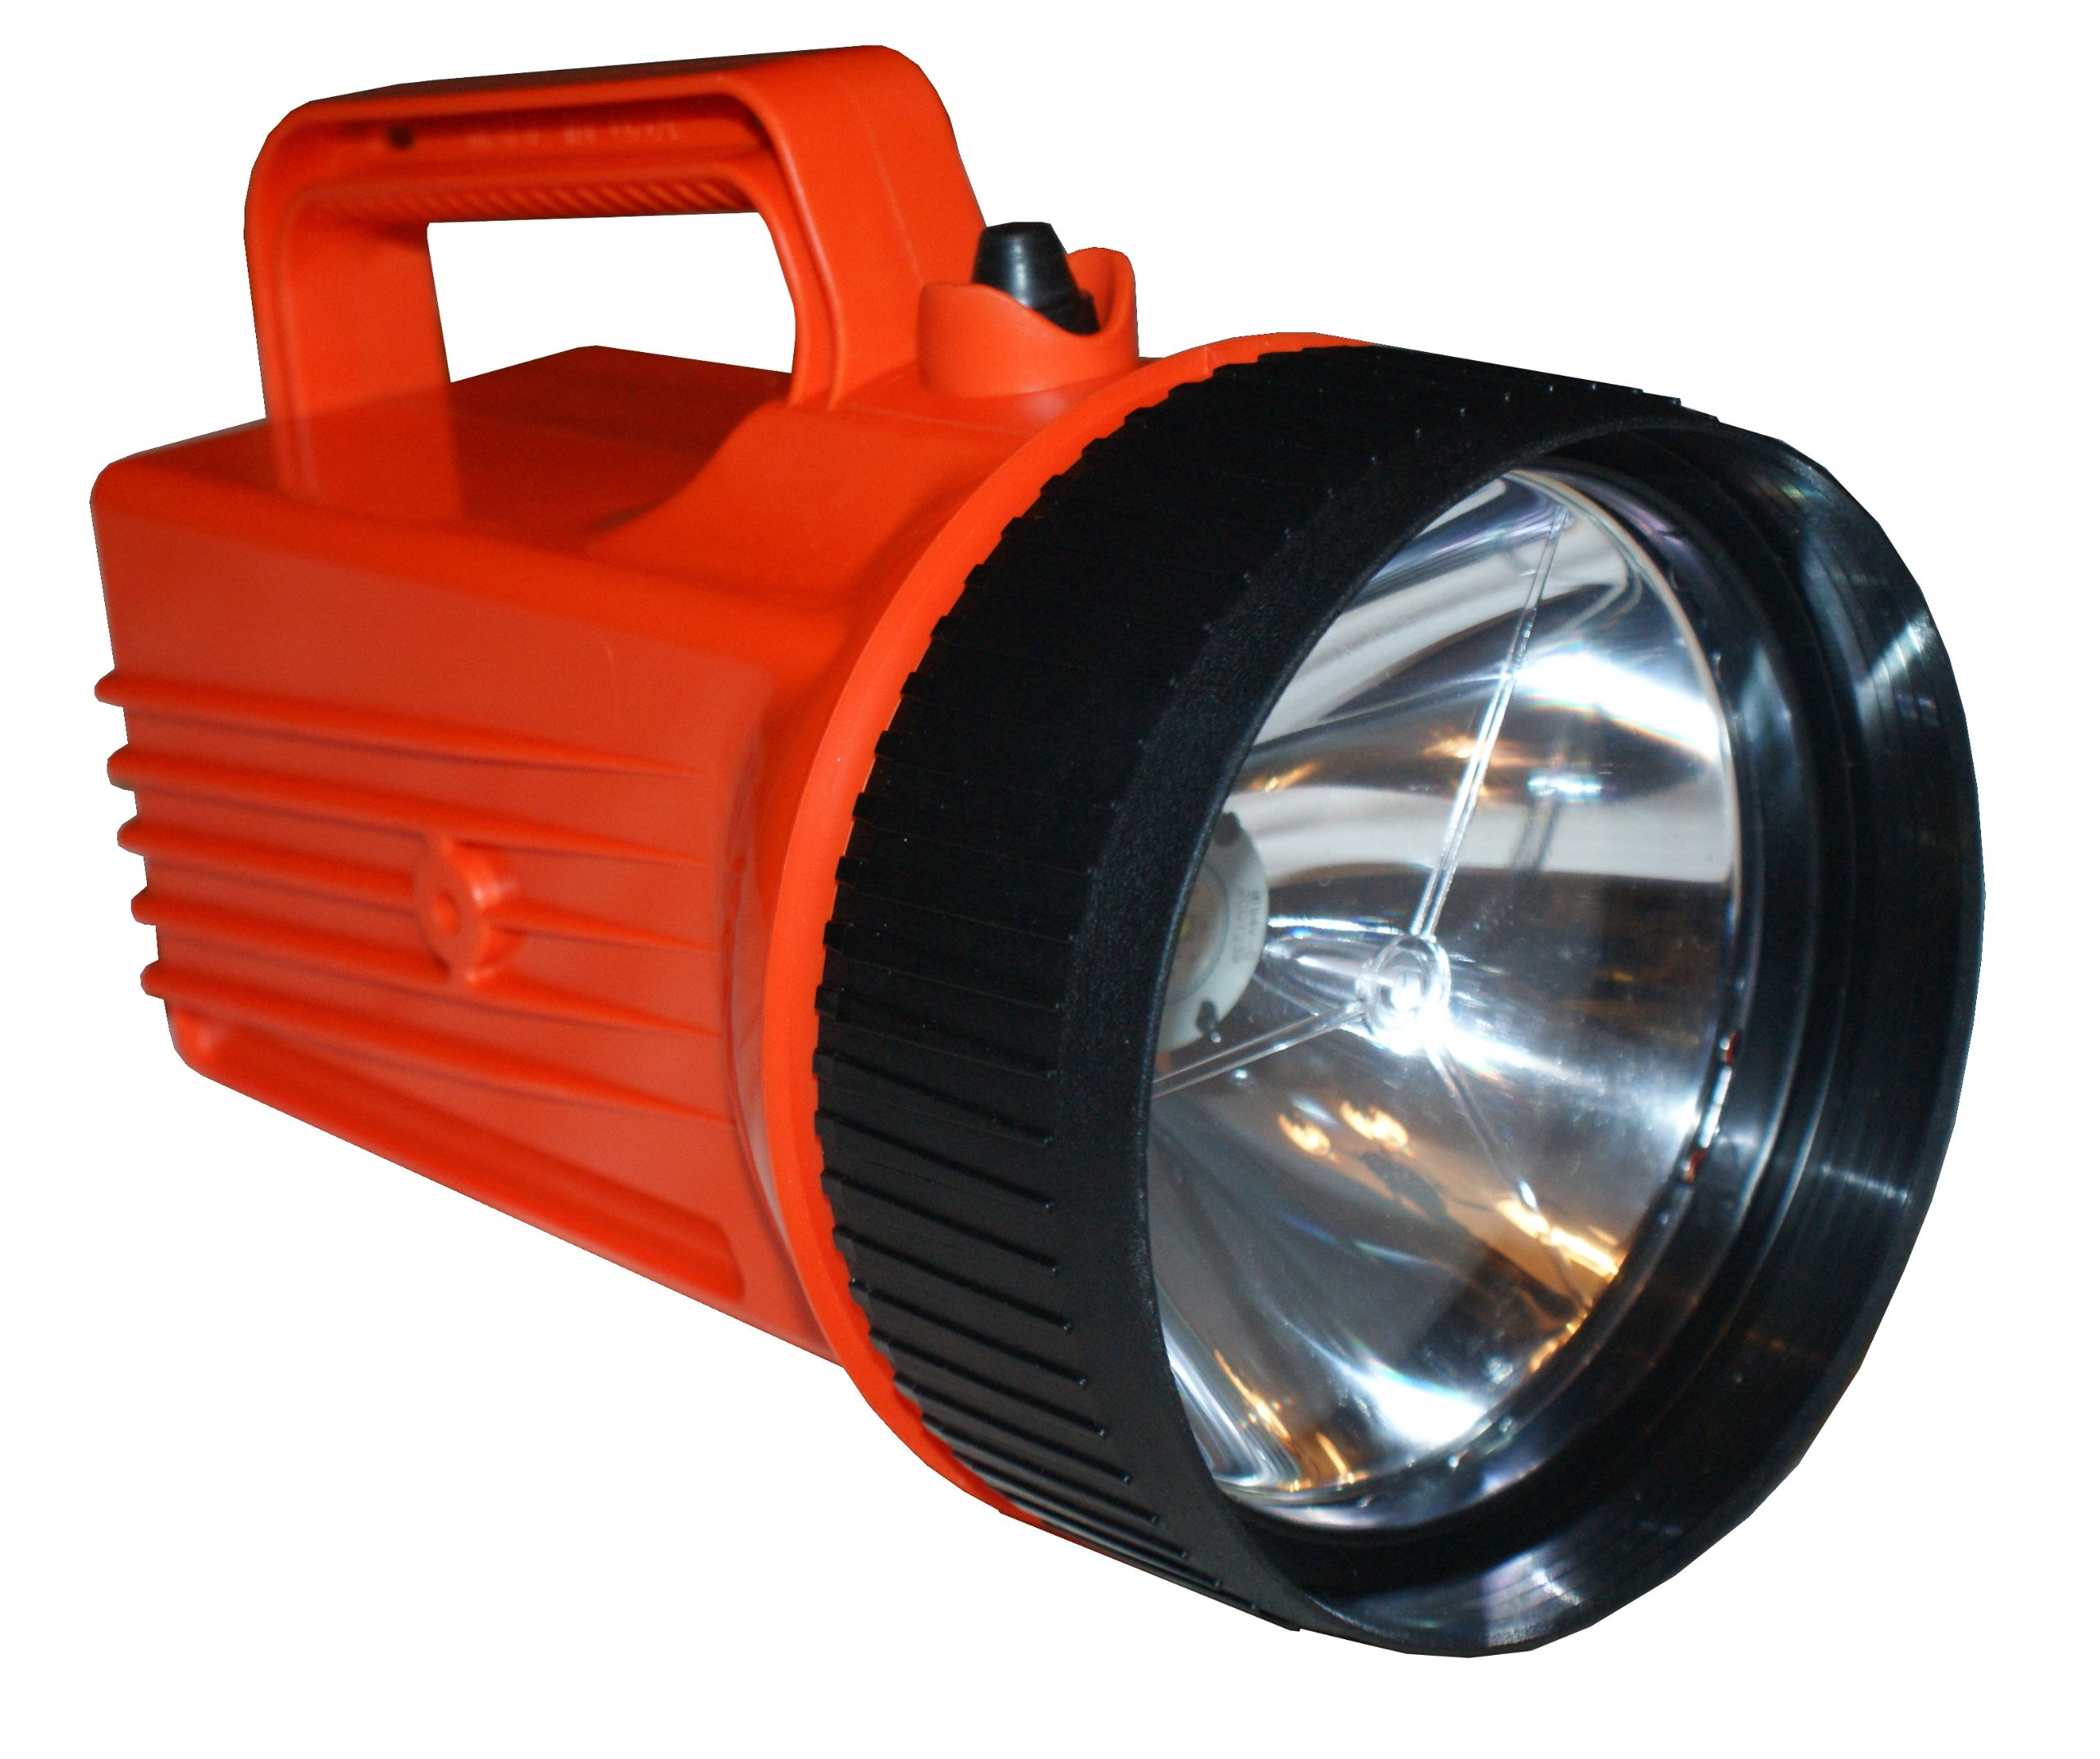 Bright Star WorkSAFE 2206 LED 4-D Cell LED Intrinsic Lantern, Waterproof, 90 Lumens, 165M Beam Distance, 150 Hours Run Time